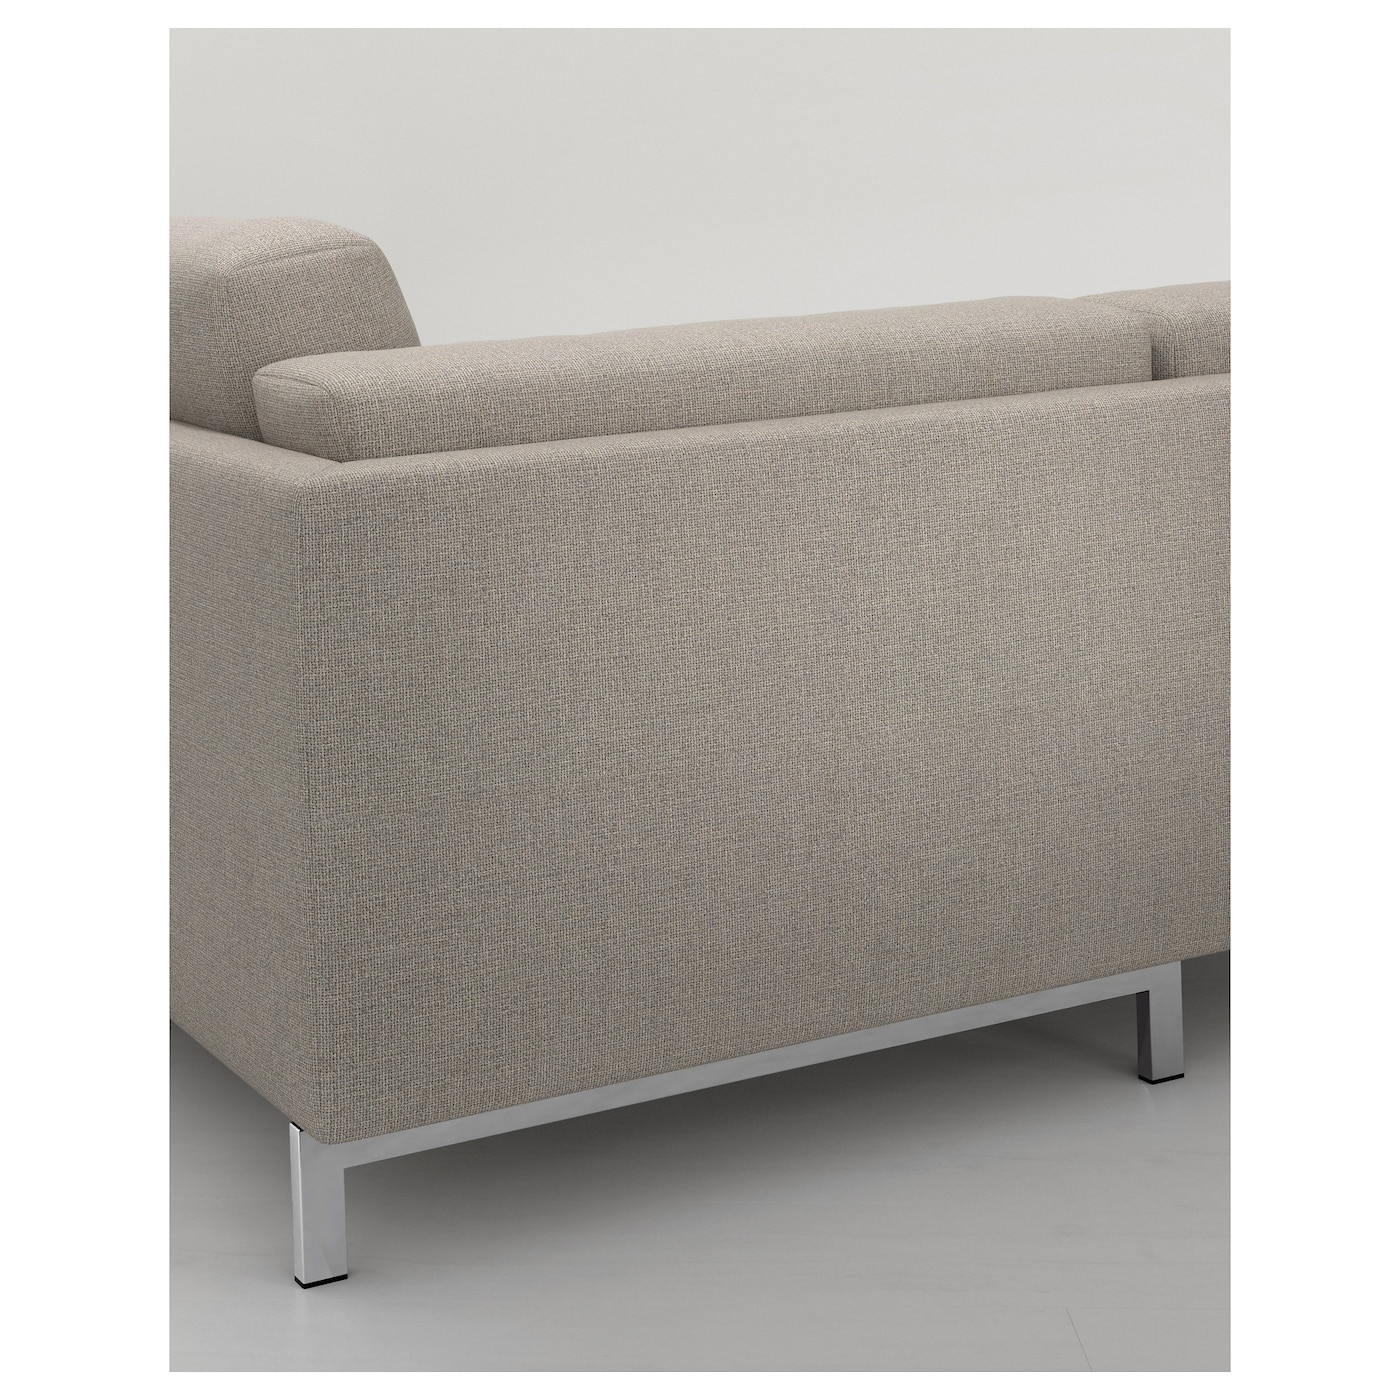 Nockeby legs for 3 seat sofa with chaise longue chrome for 3 seat chaise sofa